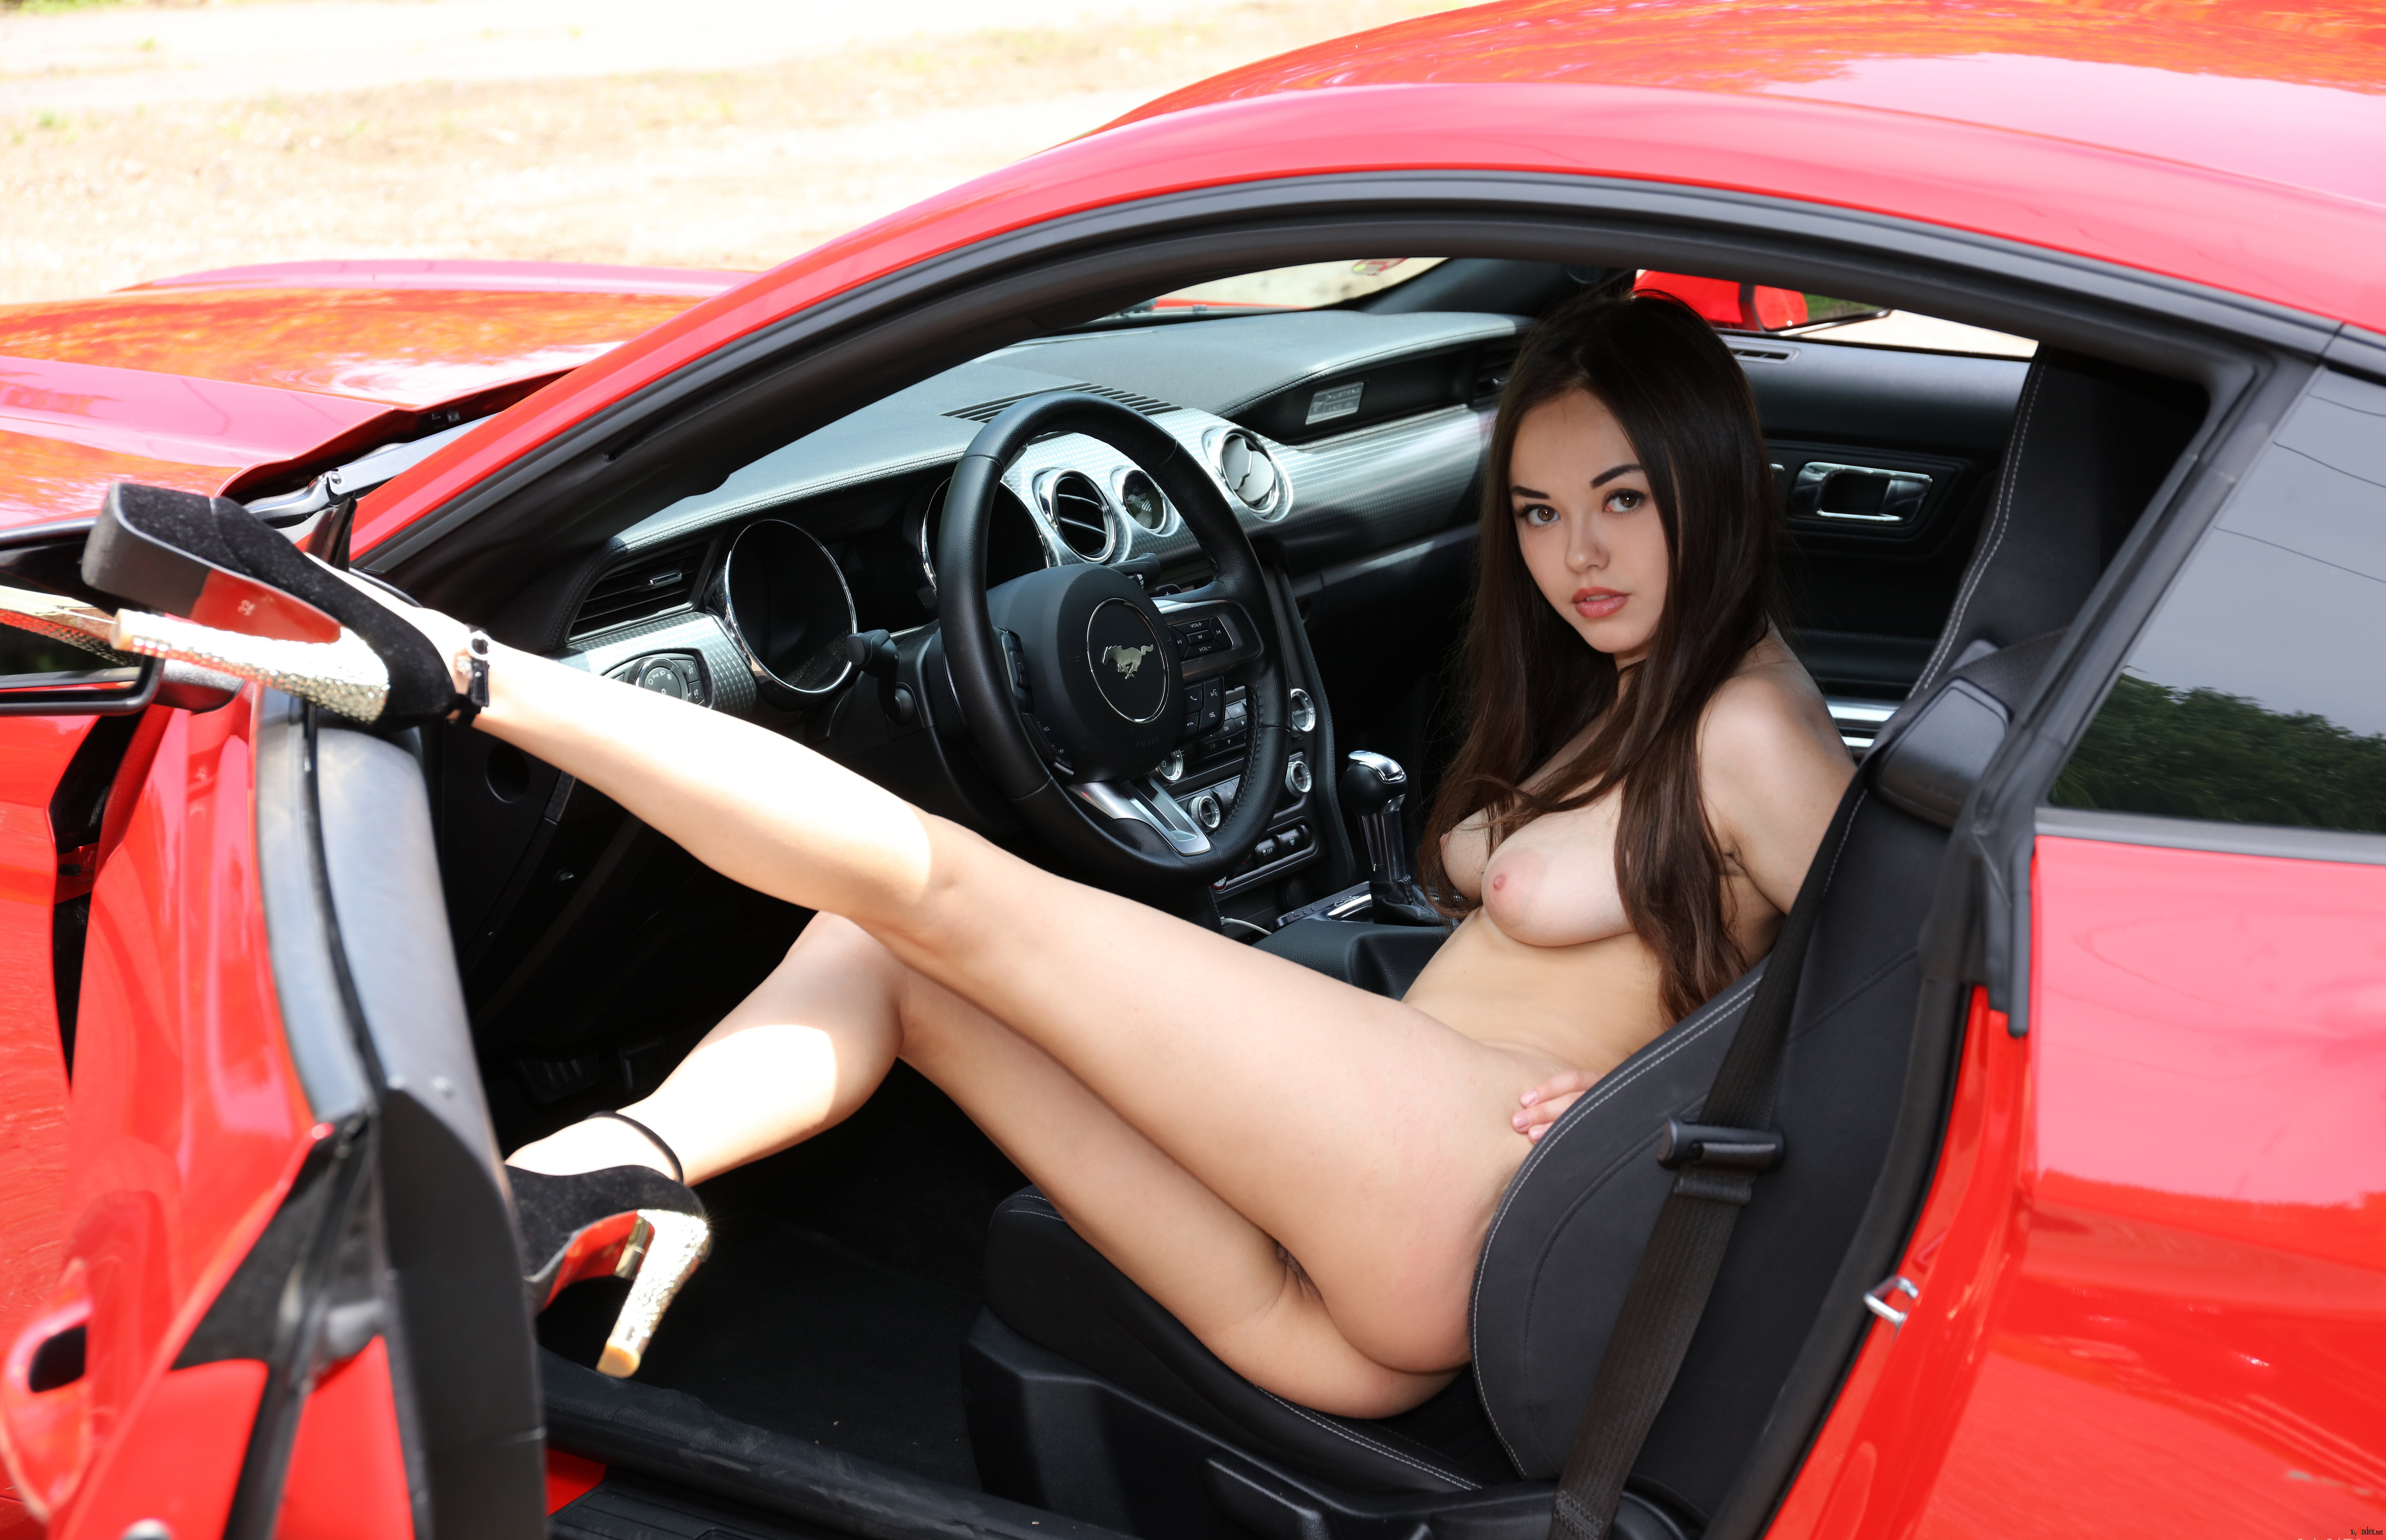 Hot Naked Chicks In Cool Cars